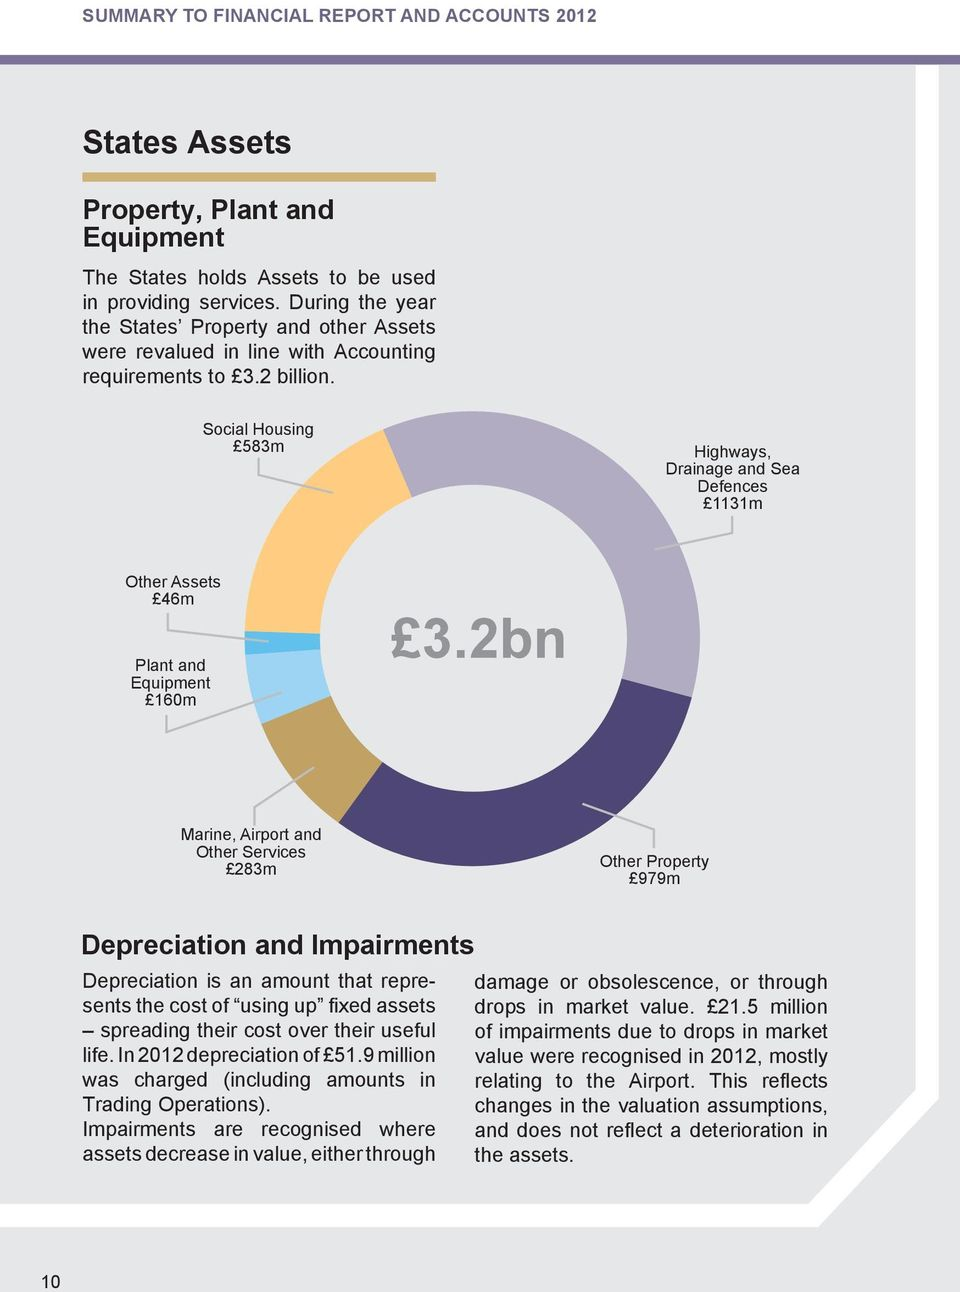 Social Housing 583m Highways, Drainage and Sea Defences 1131m Other Assets 46m Plant and Equipment 160m 3.